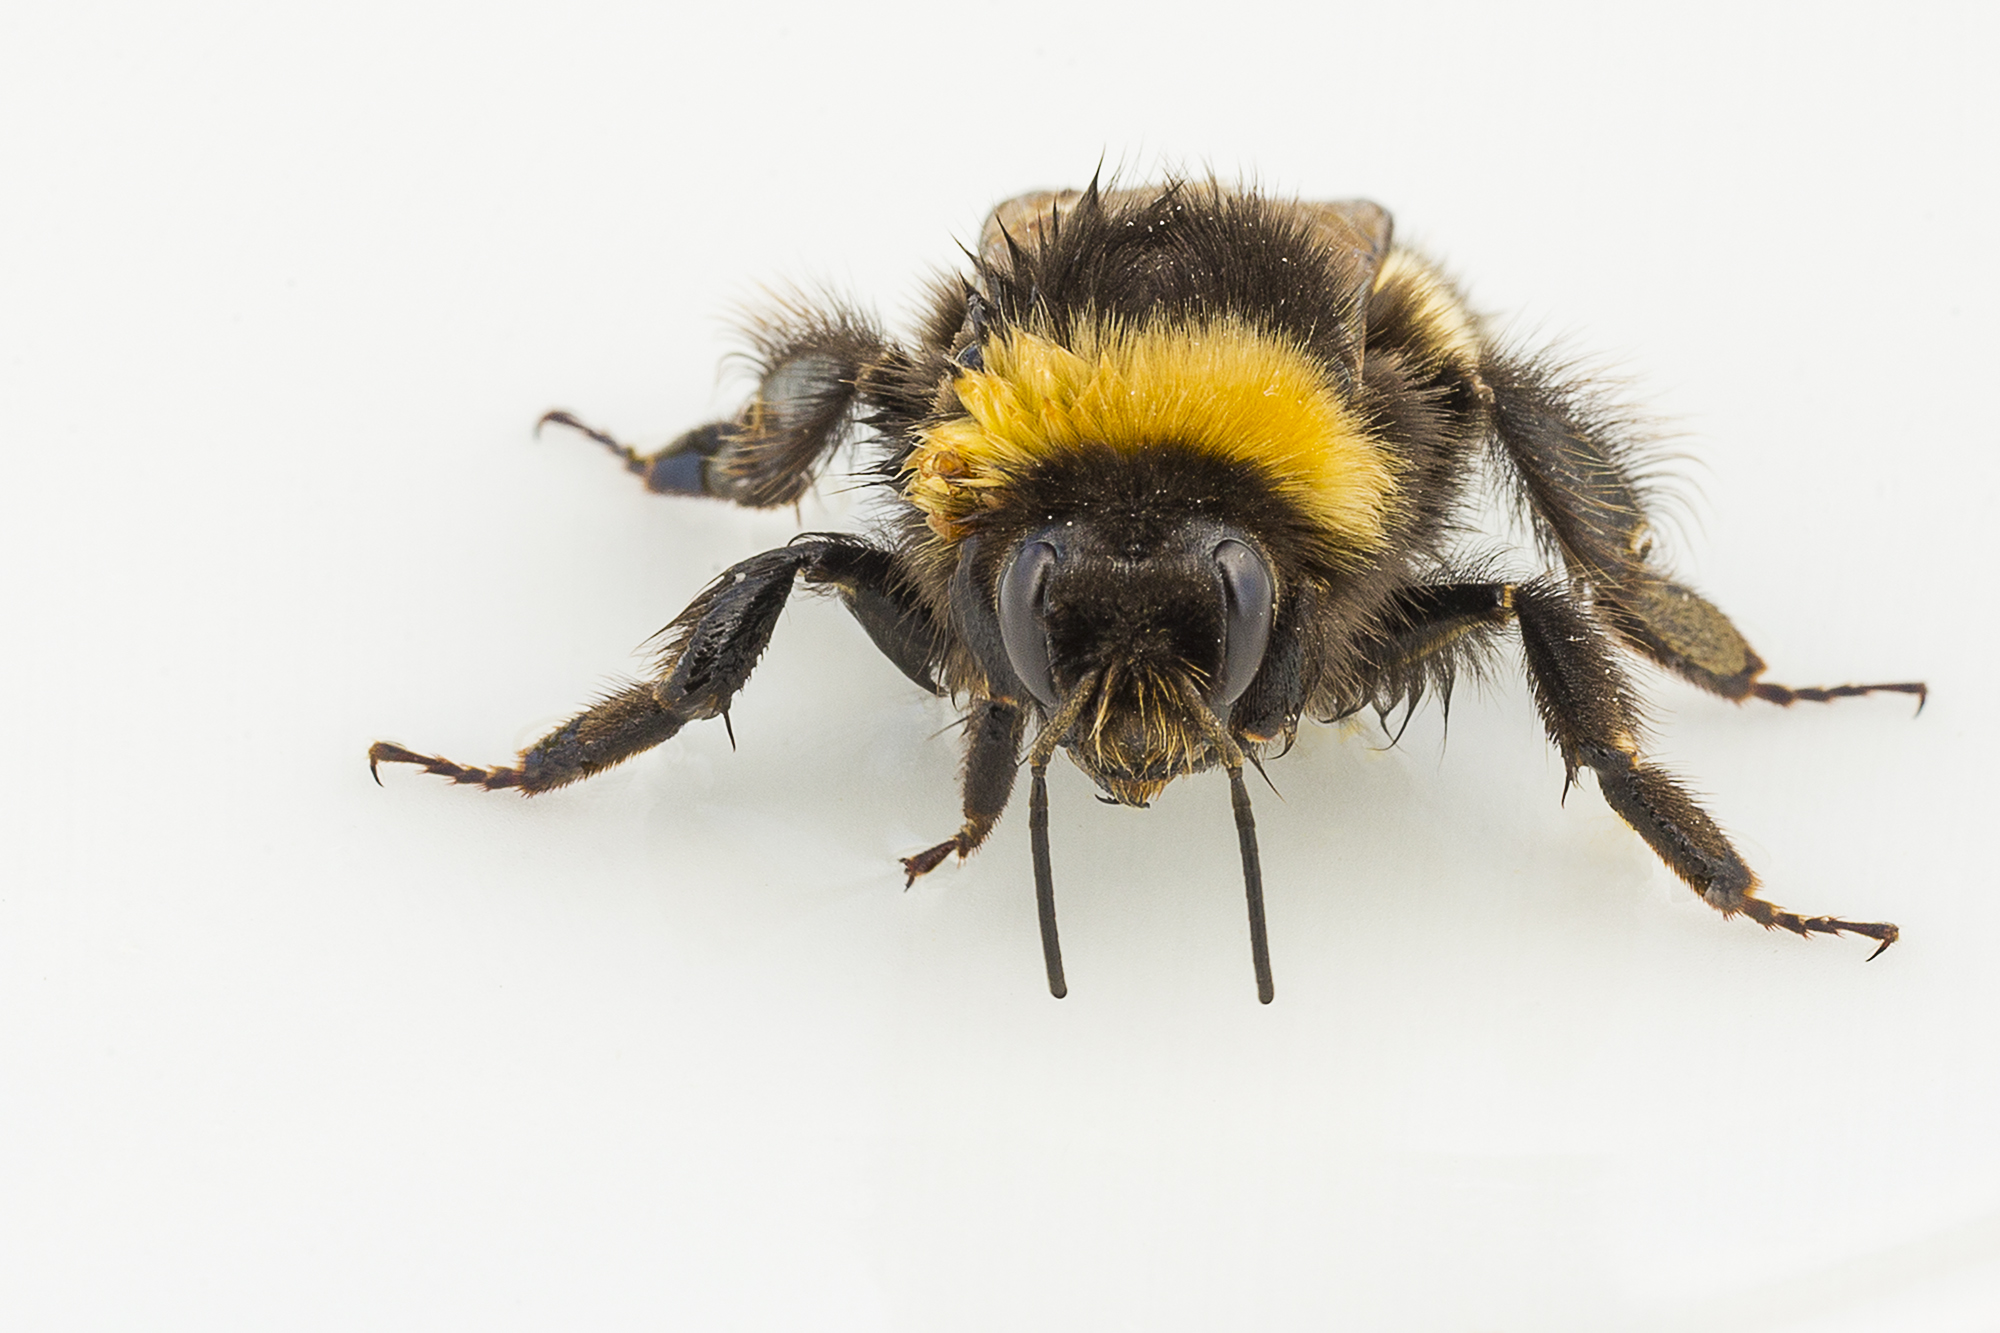 resting bee but now wide awake - he is sitting on a small white plate with some sugar solution on it.